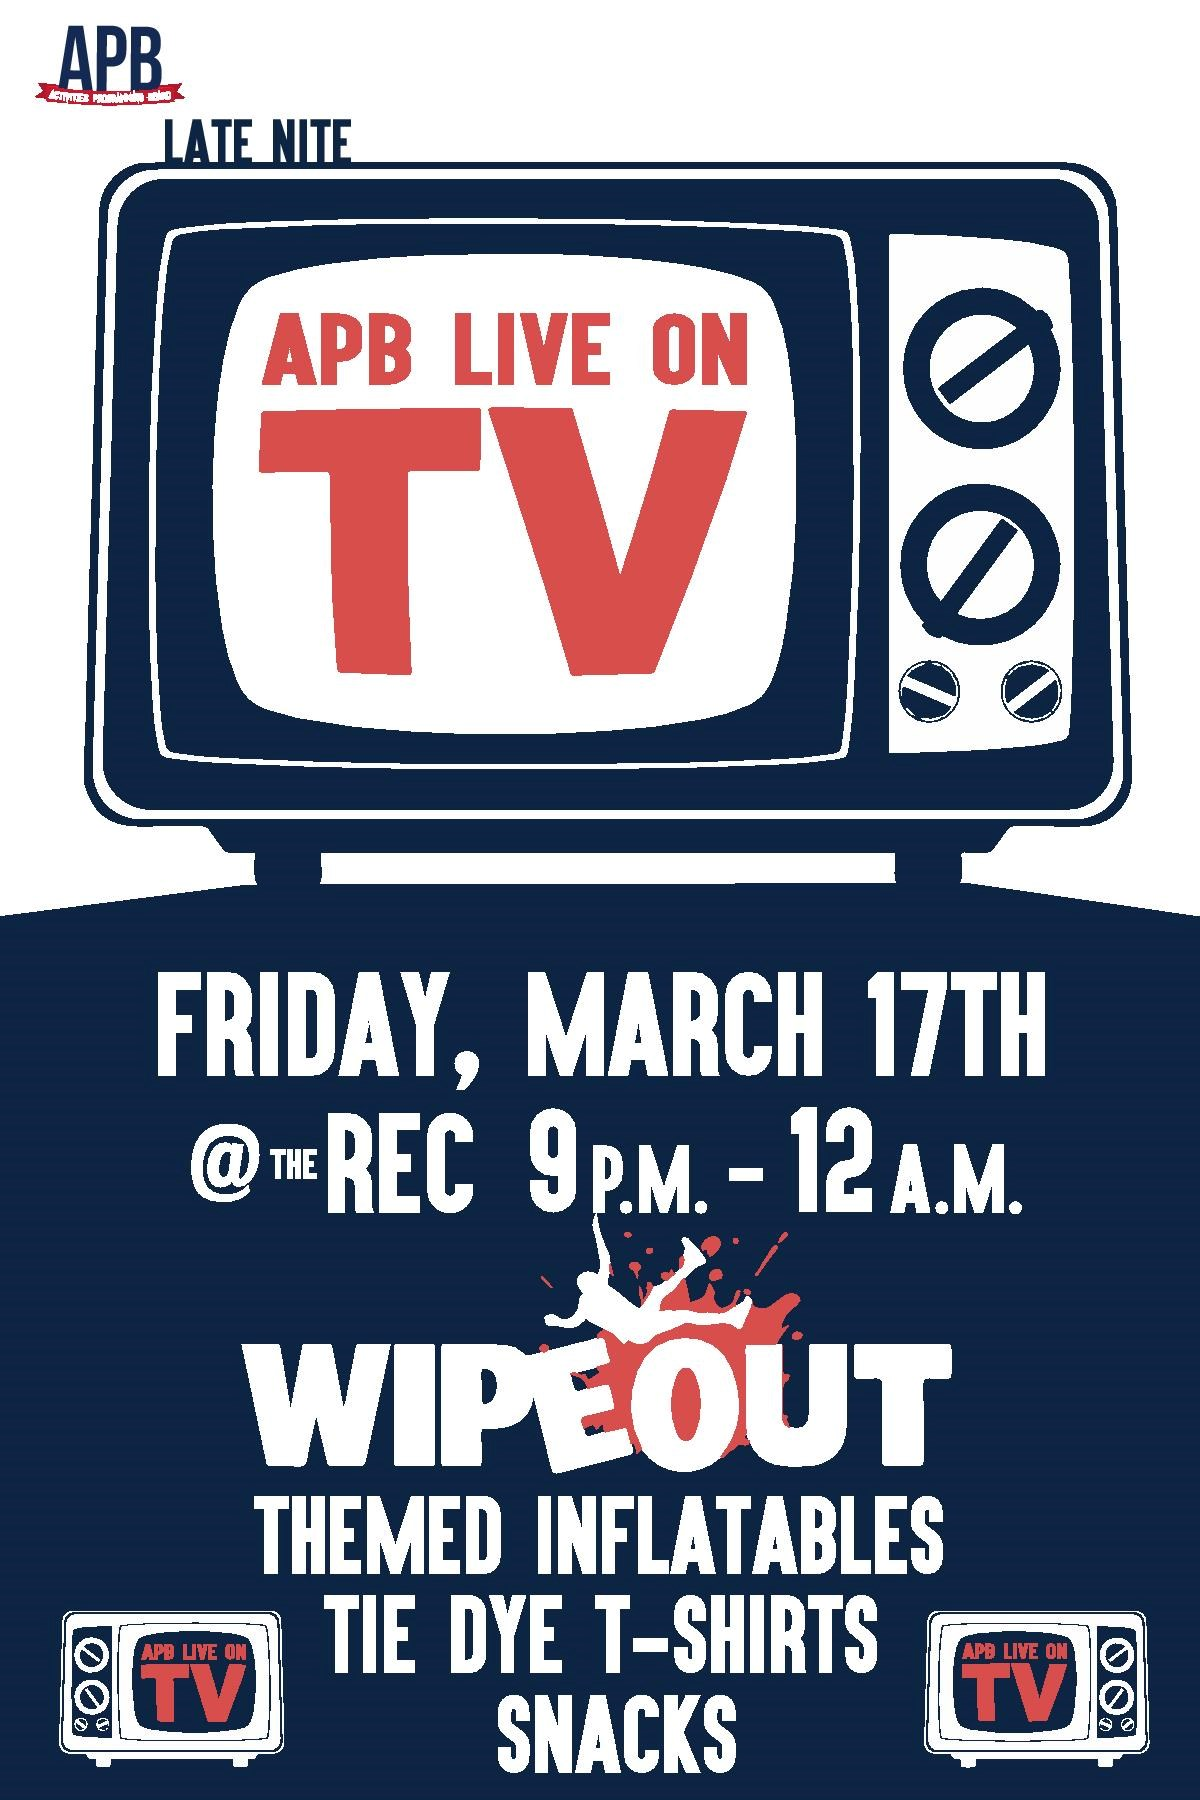 APB Live on TV - March 17